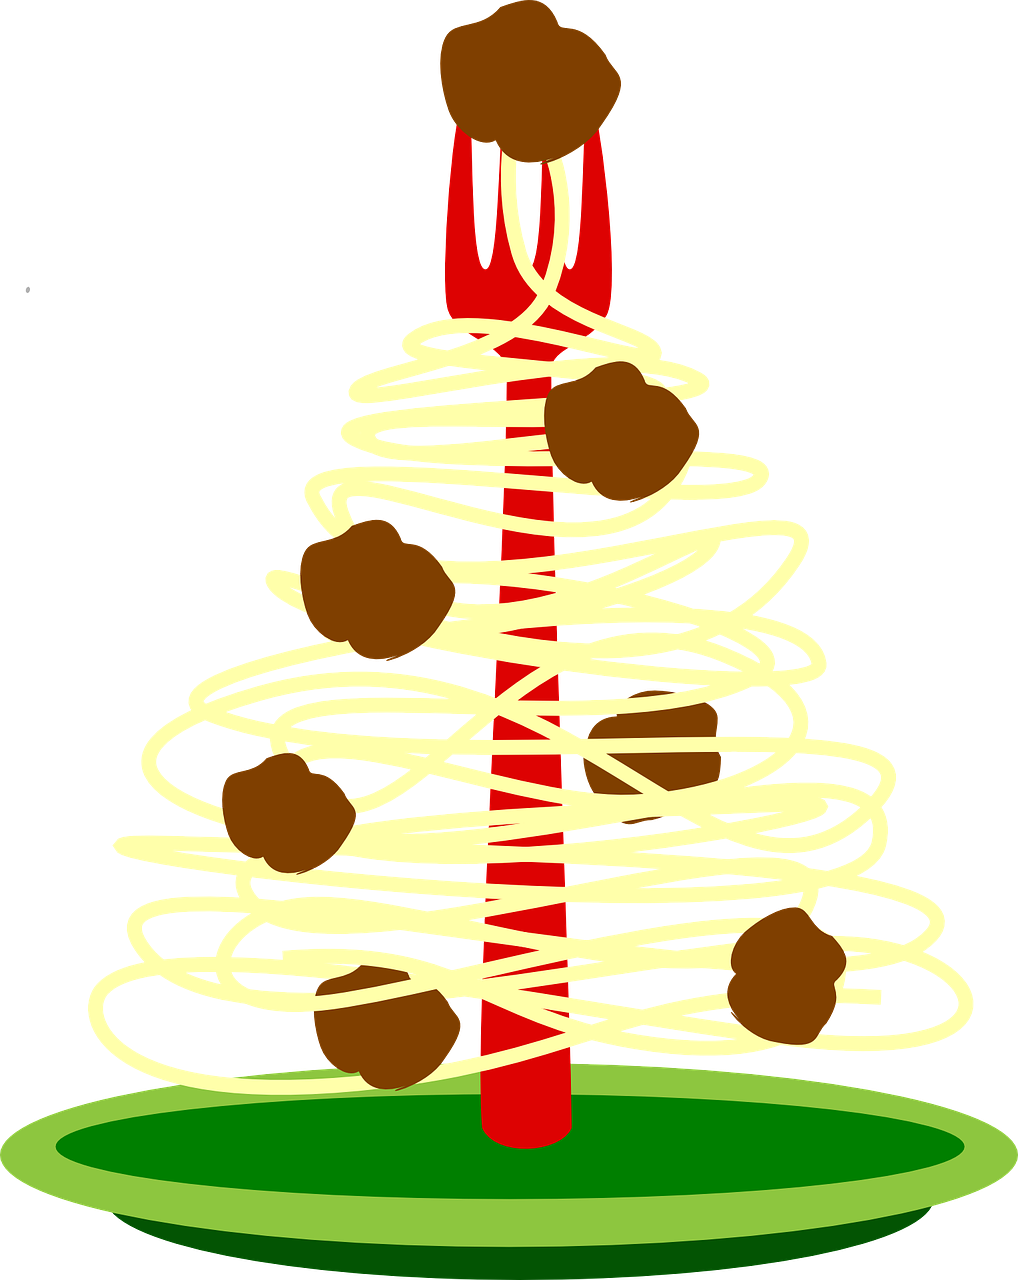 Epicures love Christmas spaghetti